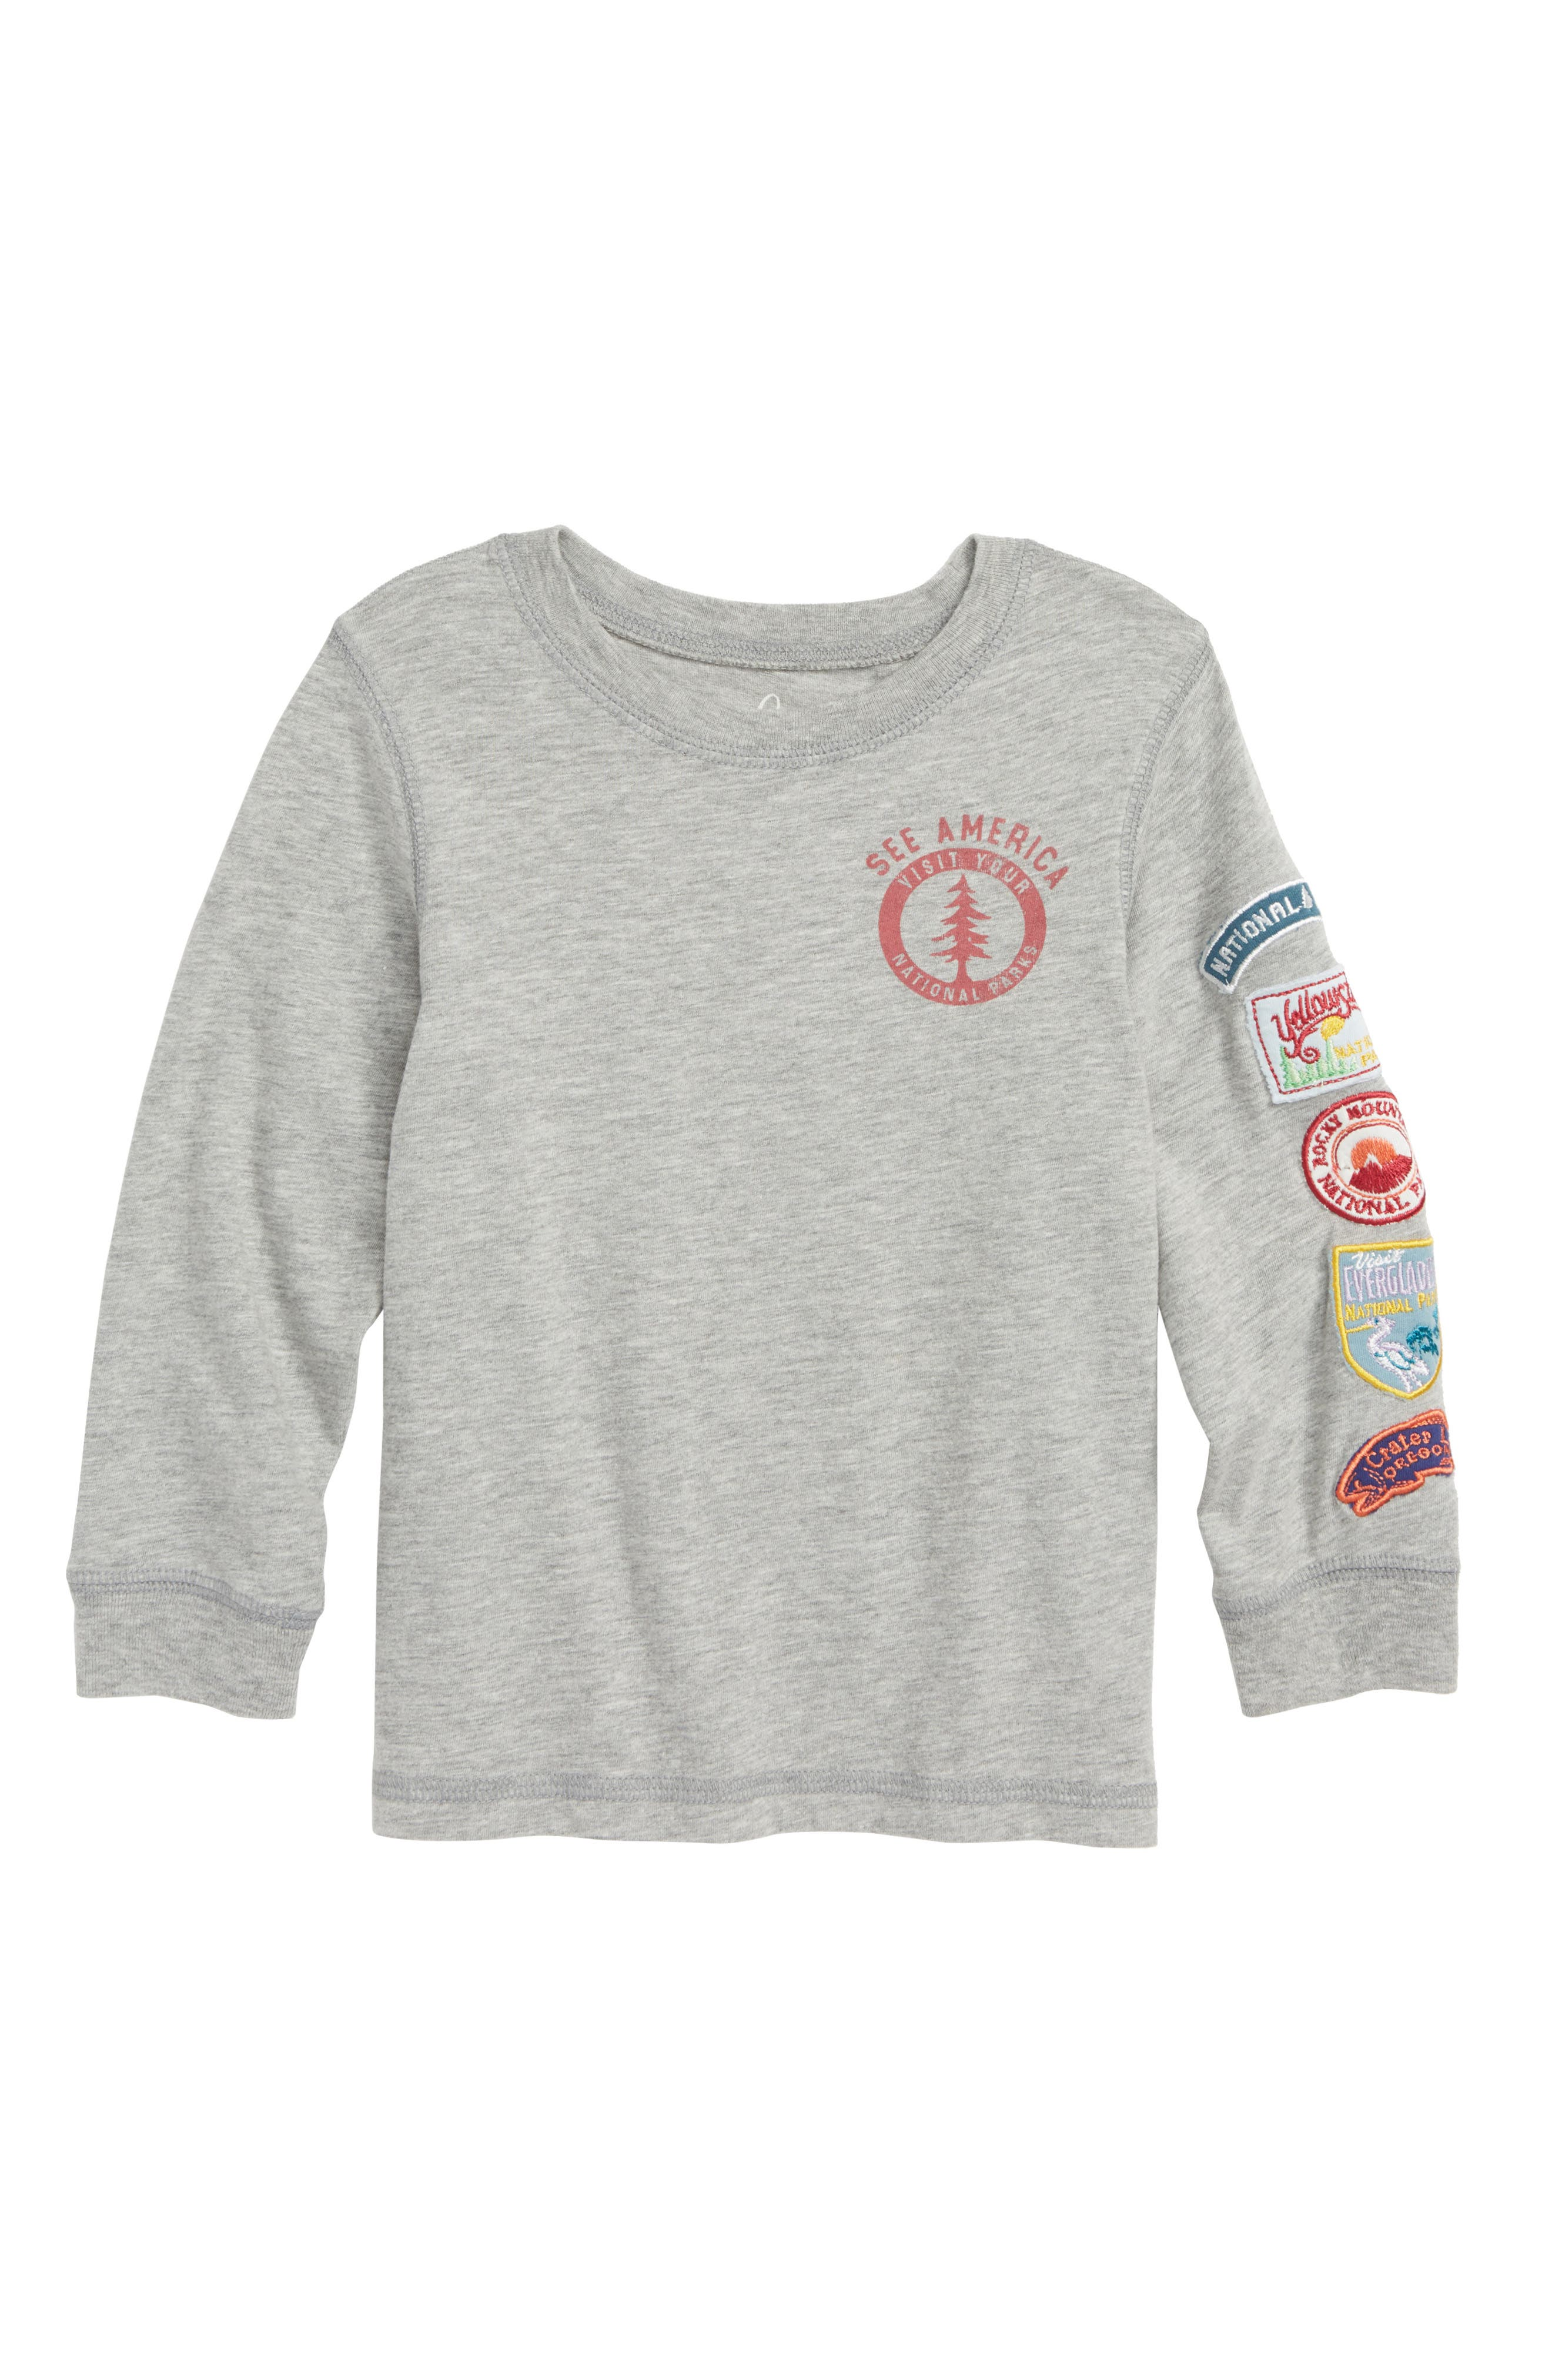 See America Graphic T-Shirt,                         Main,                         color, 051